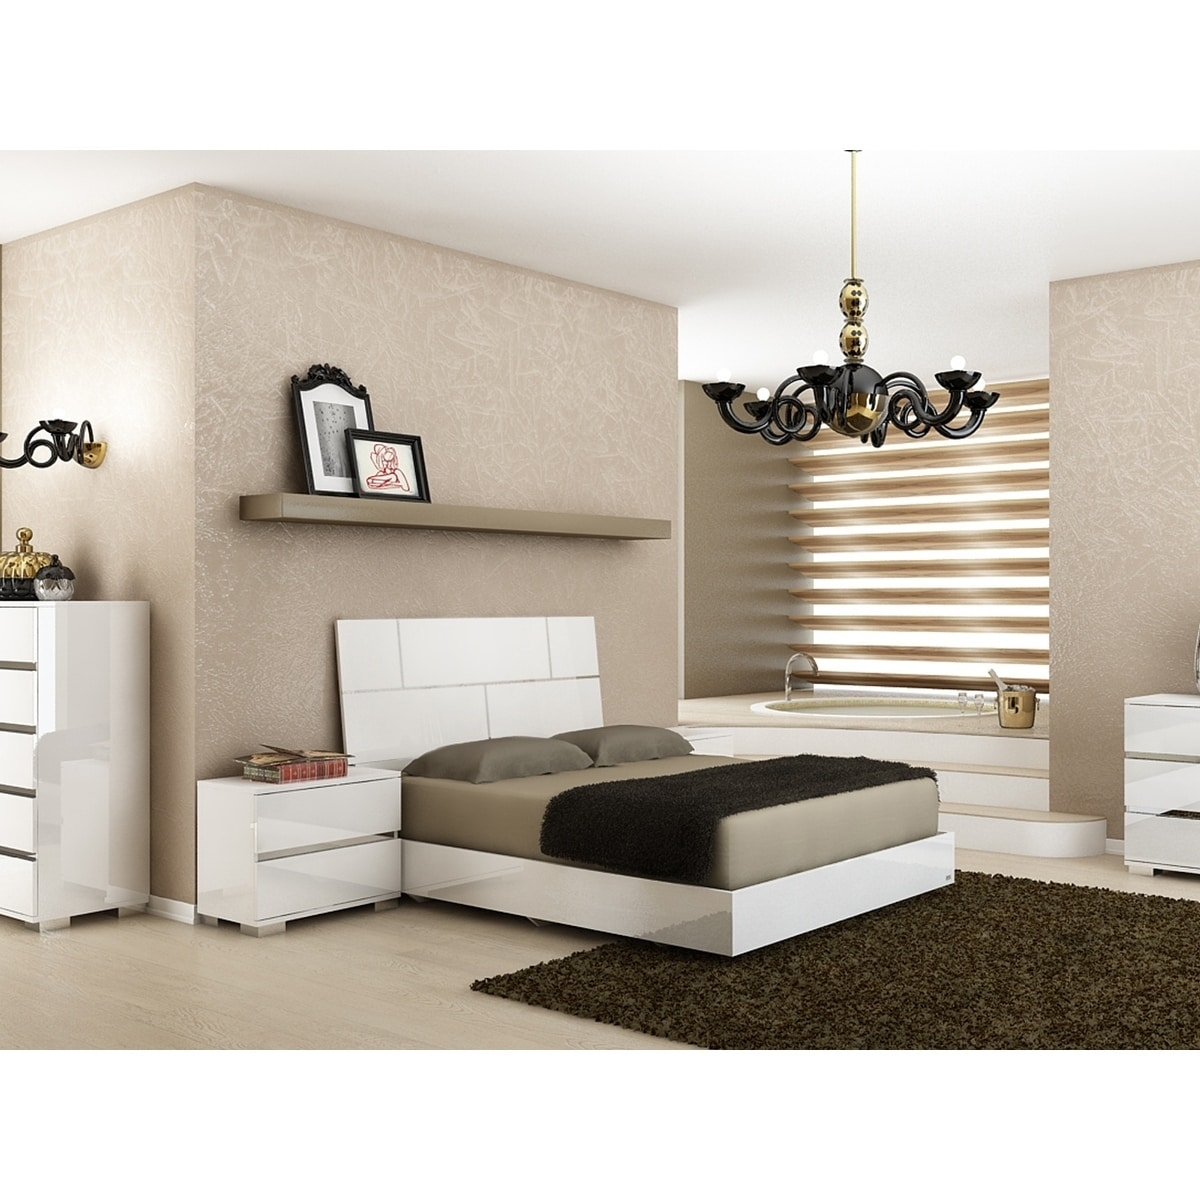 Casabianca Home Pisa High Gloss White Lacquer with Stainless Steel Queen Bed